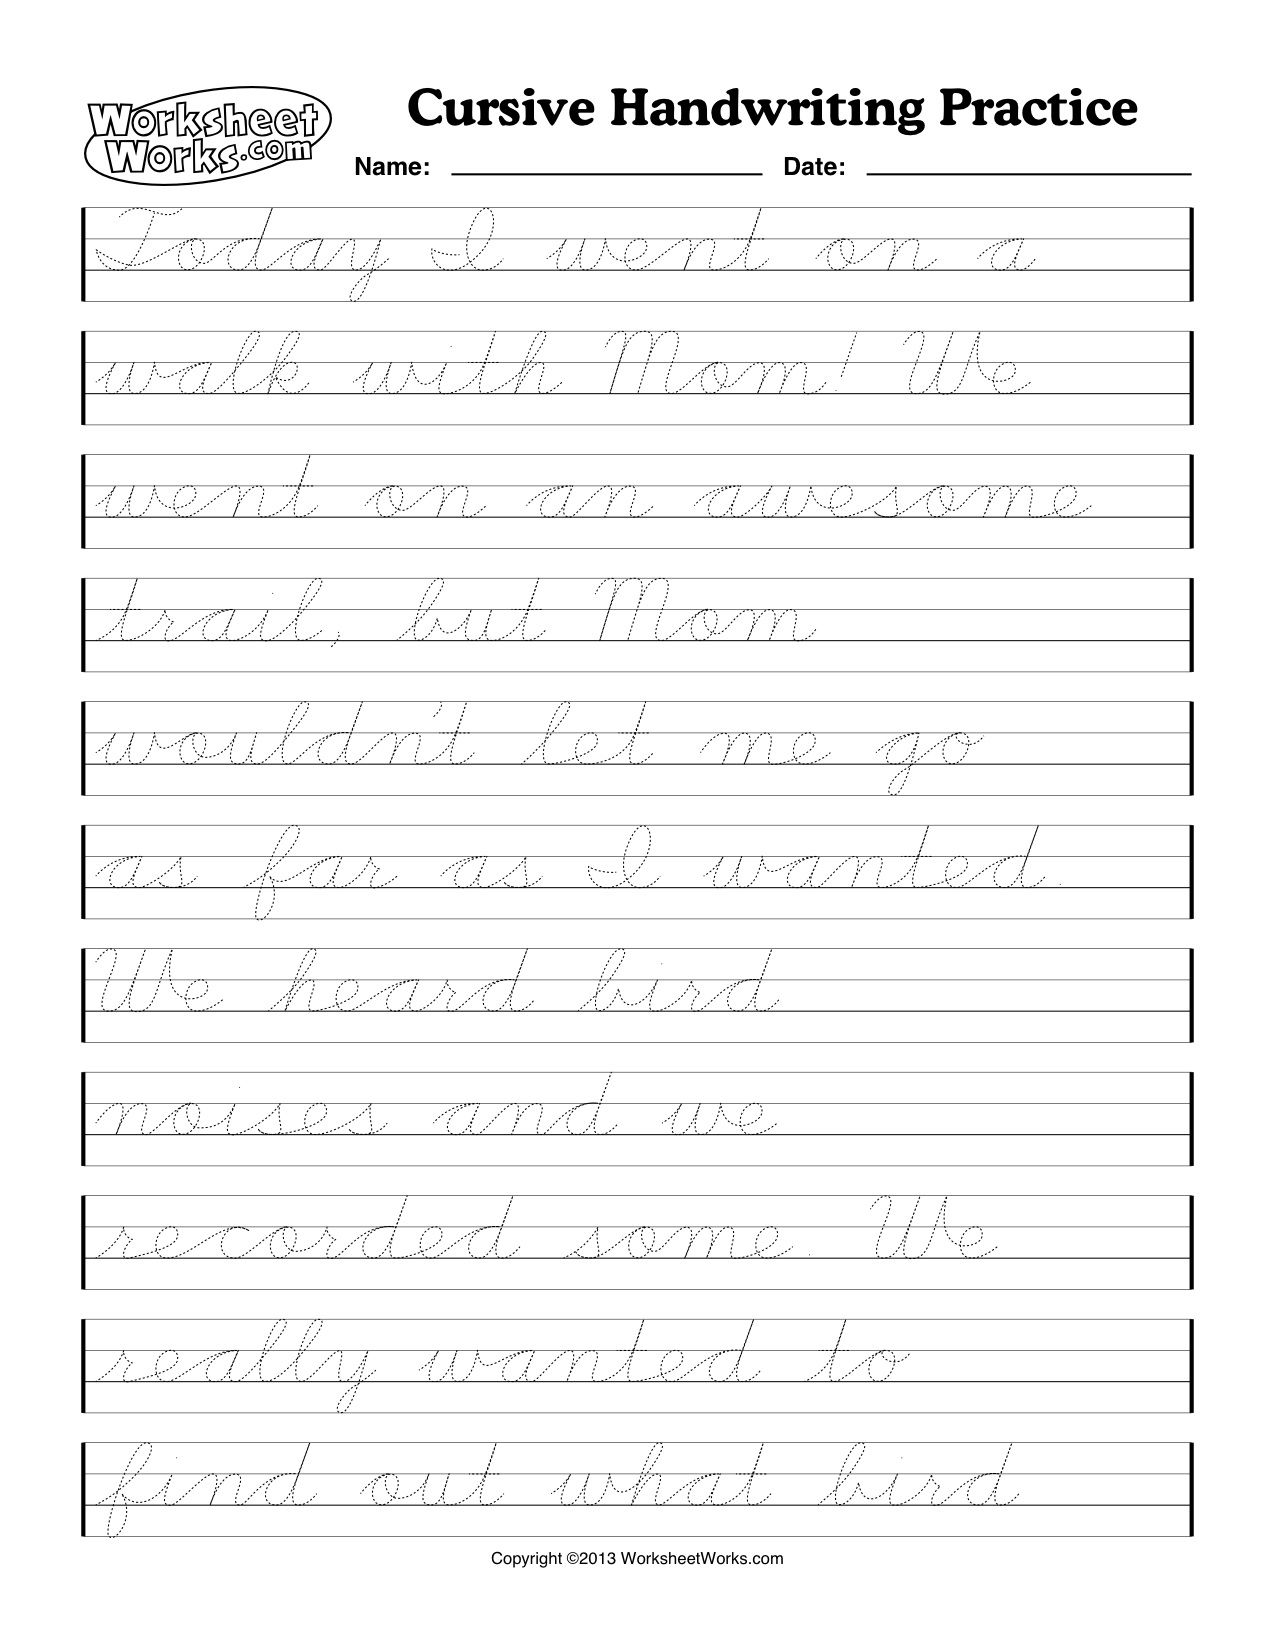 Cursive Handwriting Worksheets